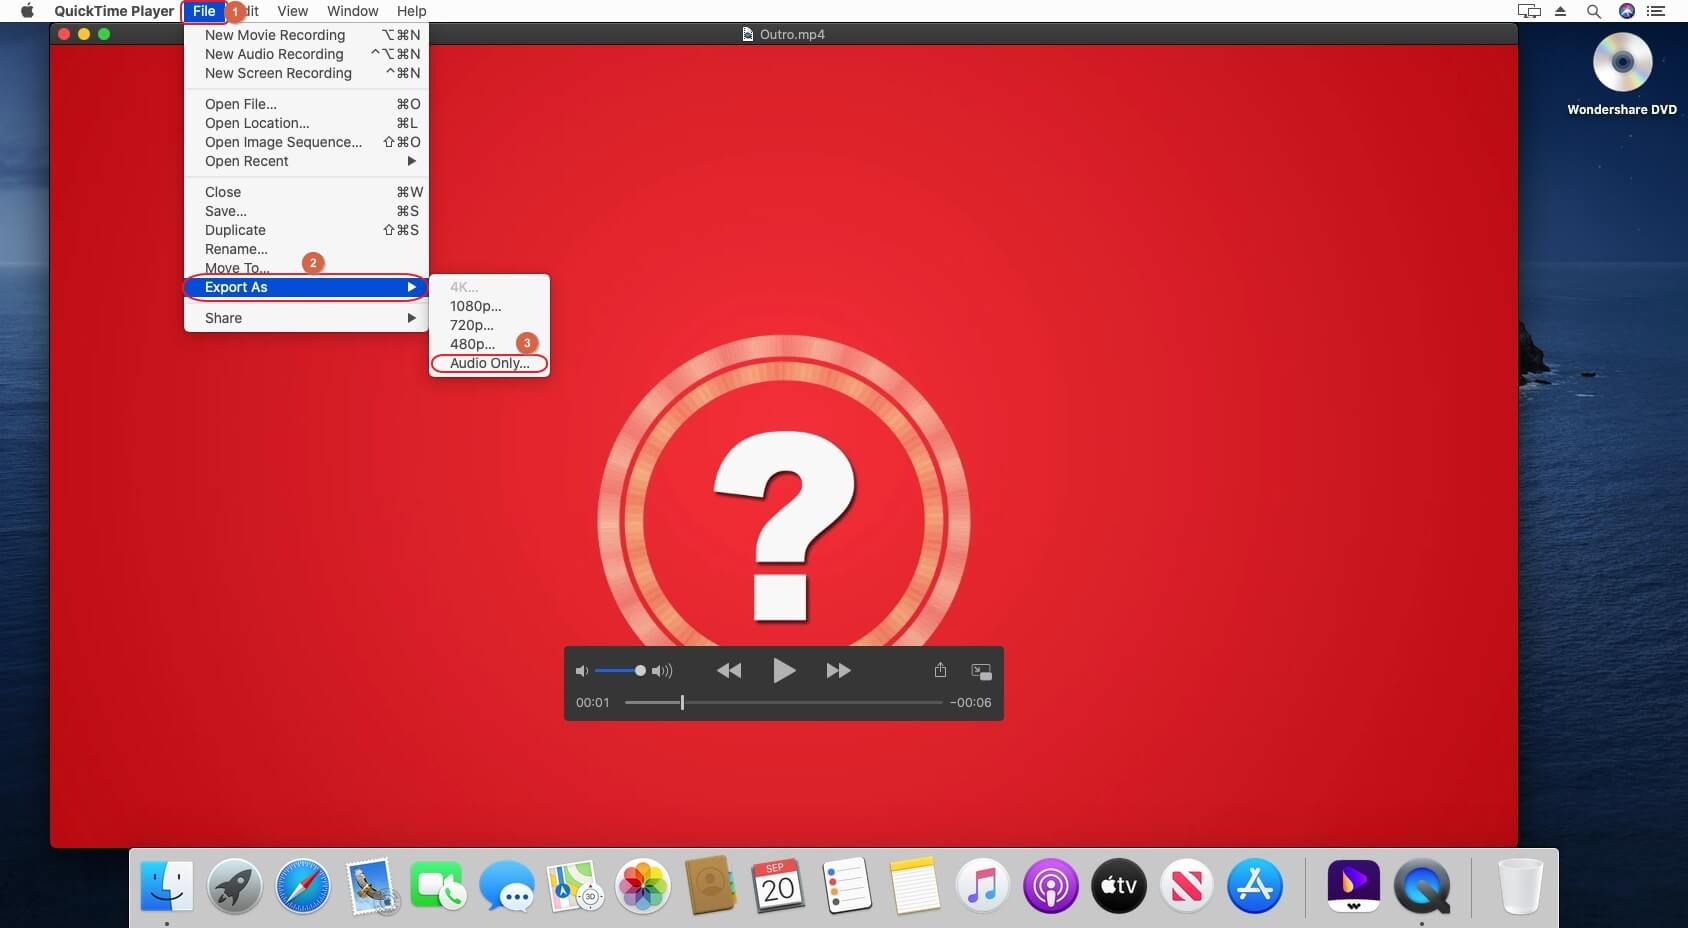 convert video to mp3 in QuickTime